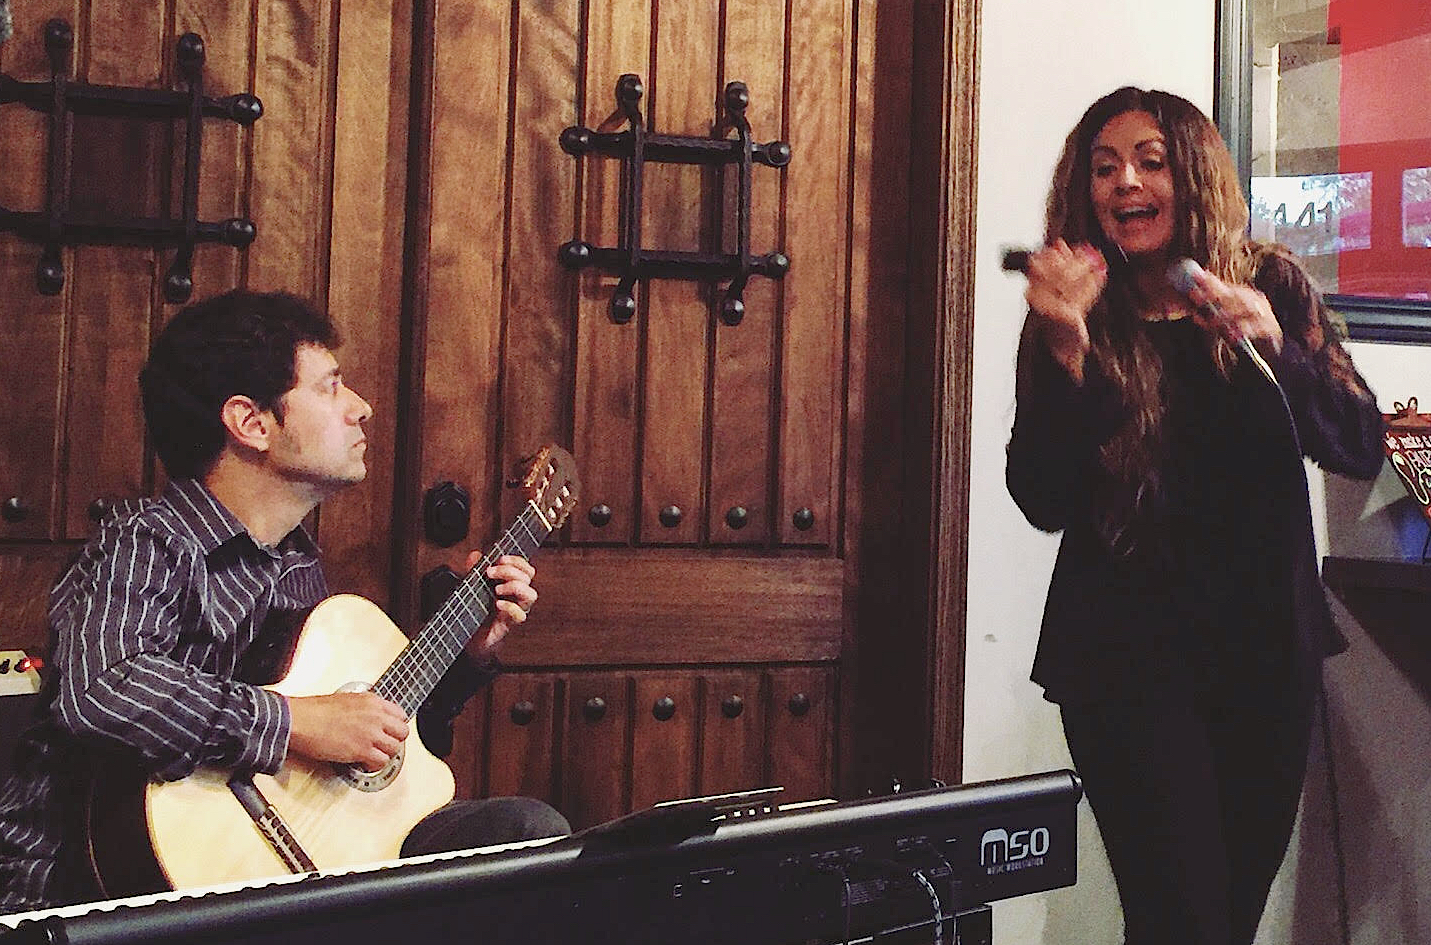 Performing in Healdsburg, CA with Brazilian singer Fabiana Passoni, September 3rd, 2016.